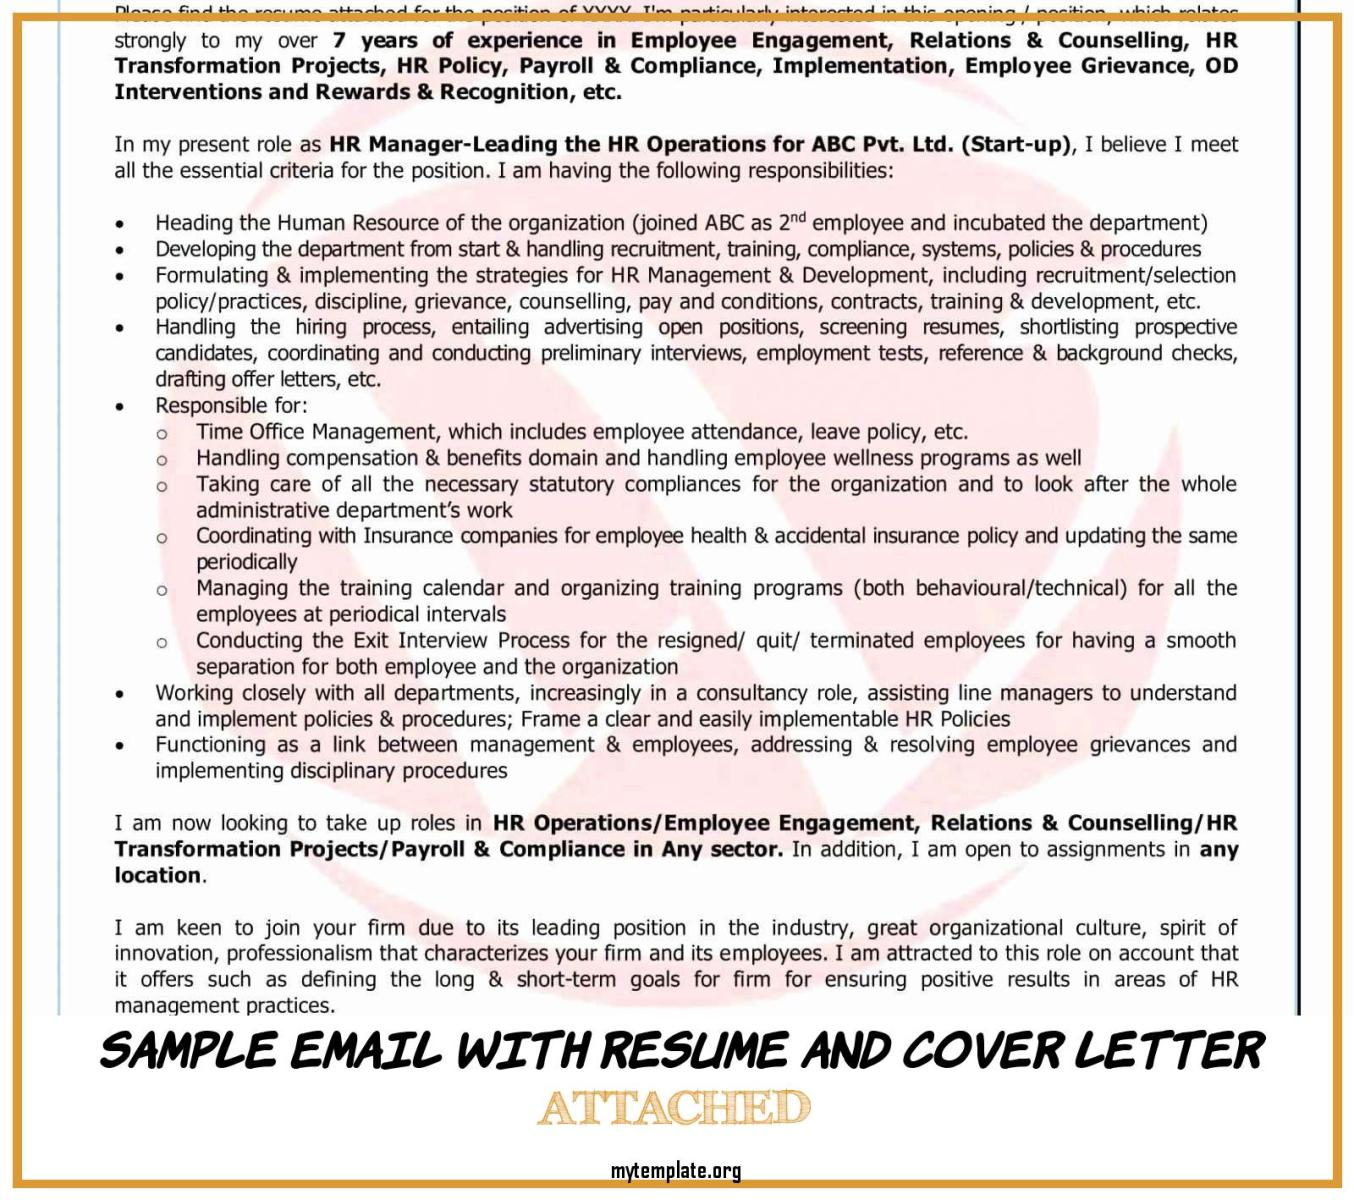 8 Sample Email With Resume And Cover Letter Attached Free Templates